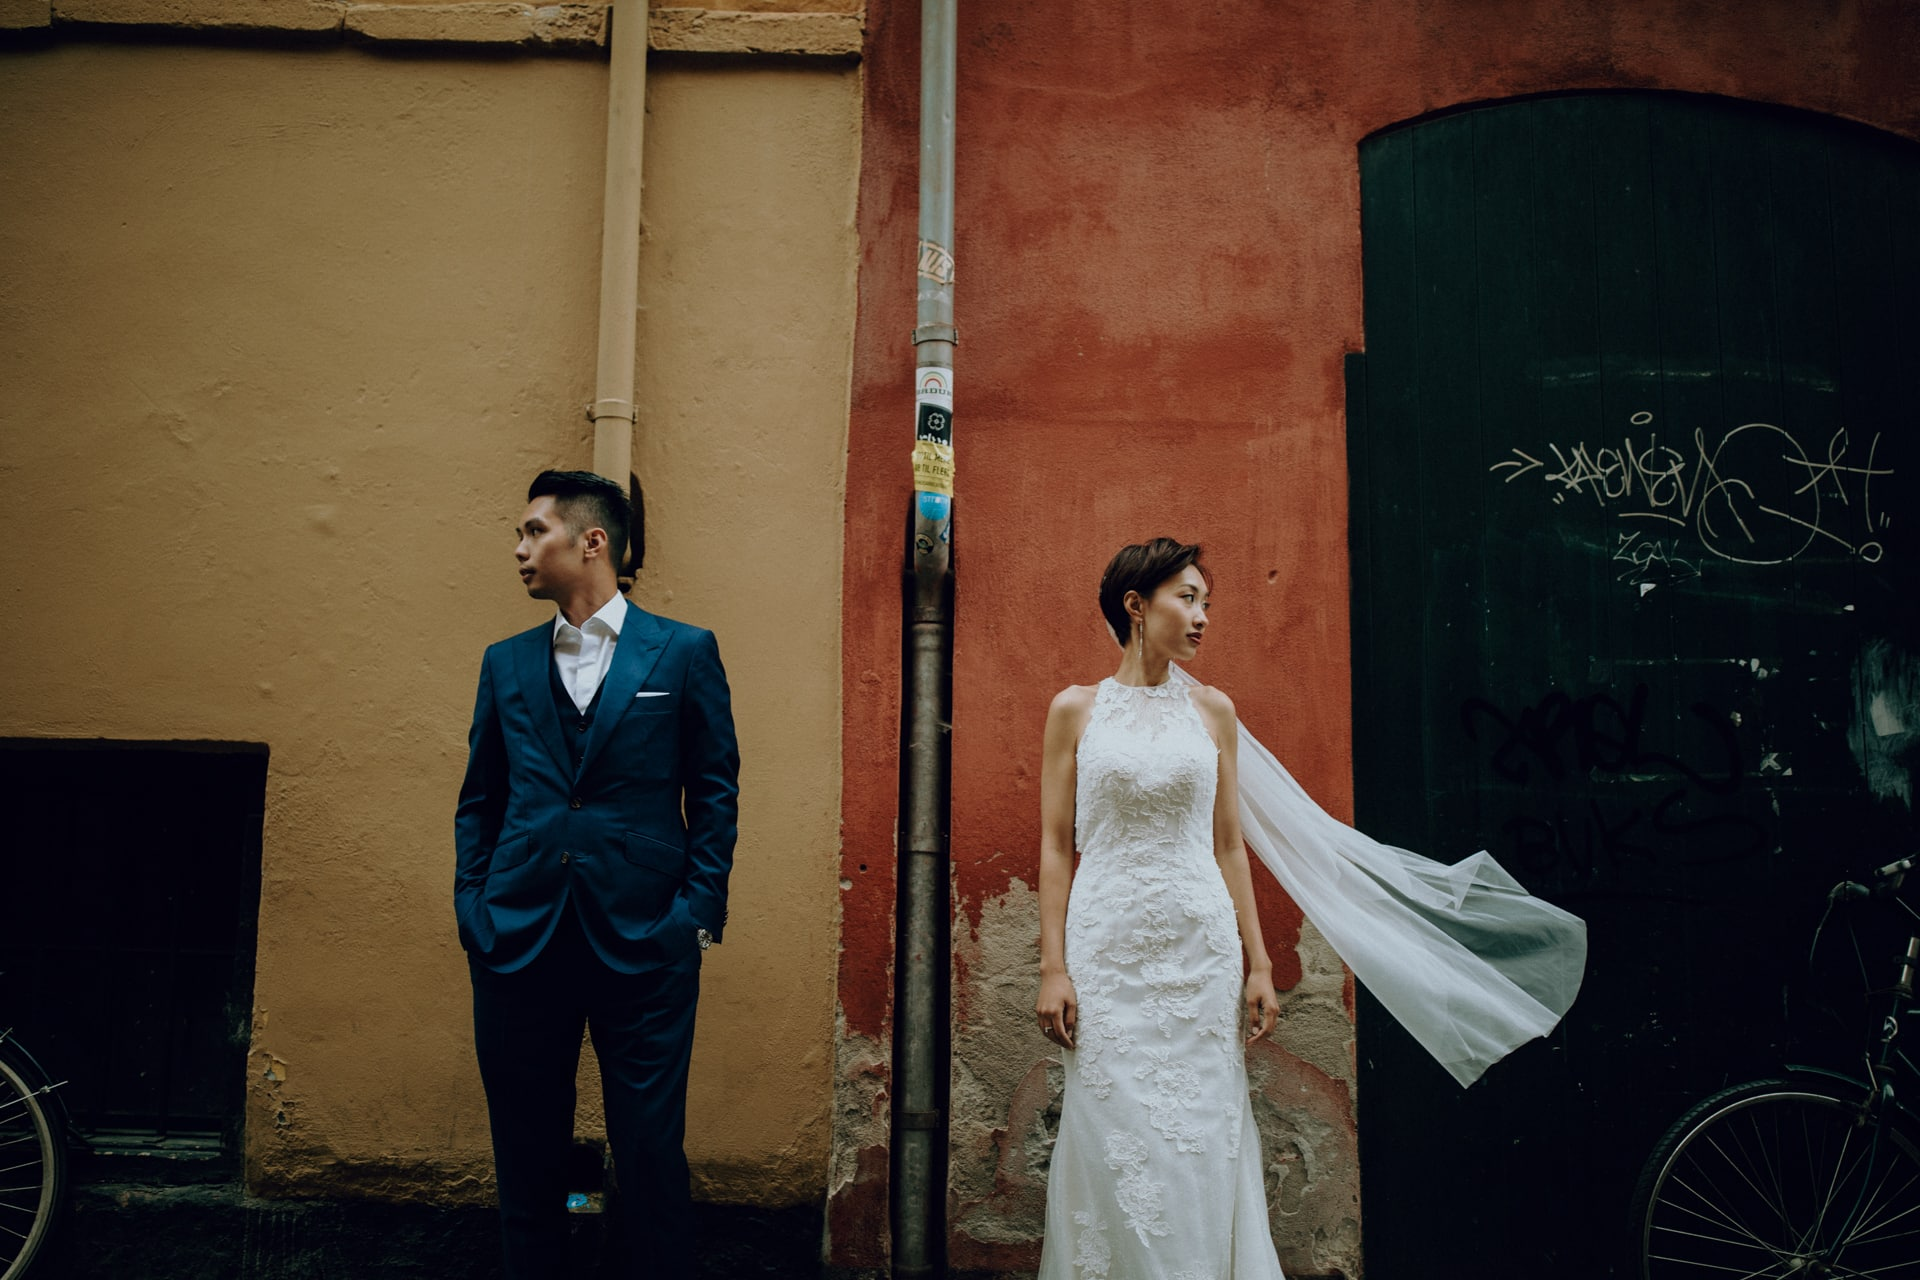 The wedding couple is standing in front of a orange and beige wall.